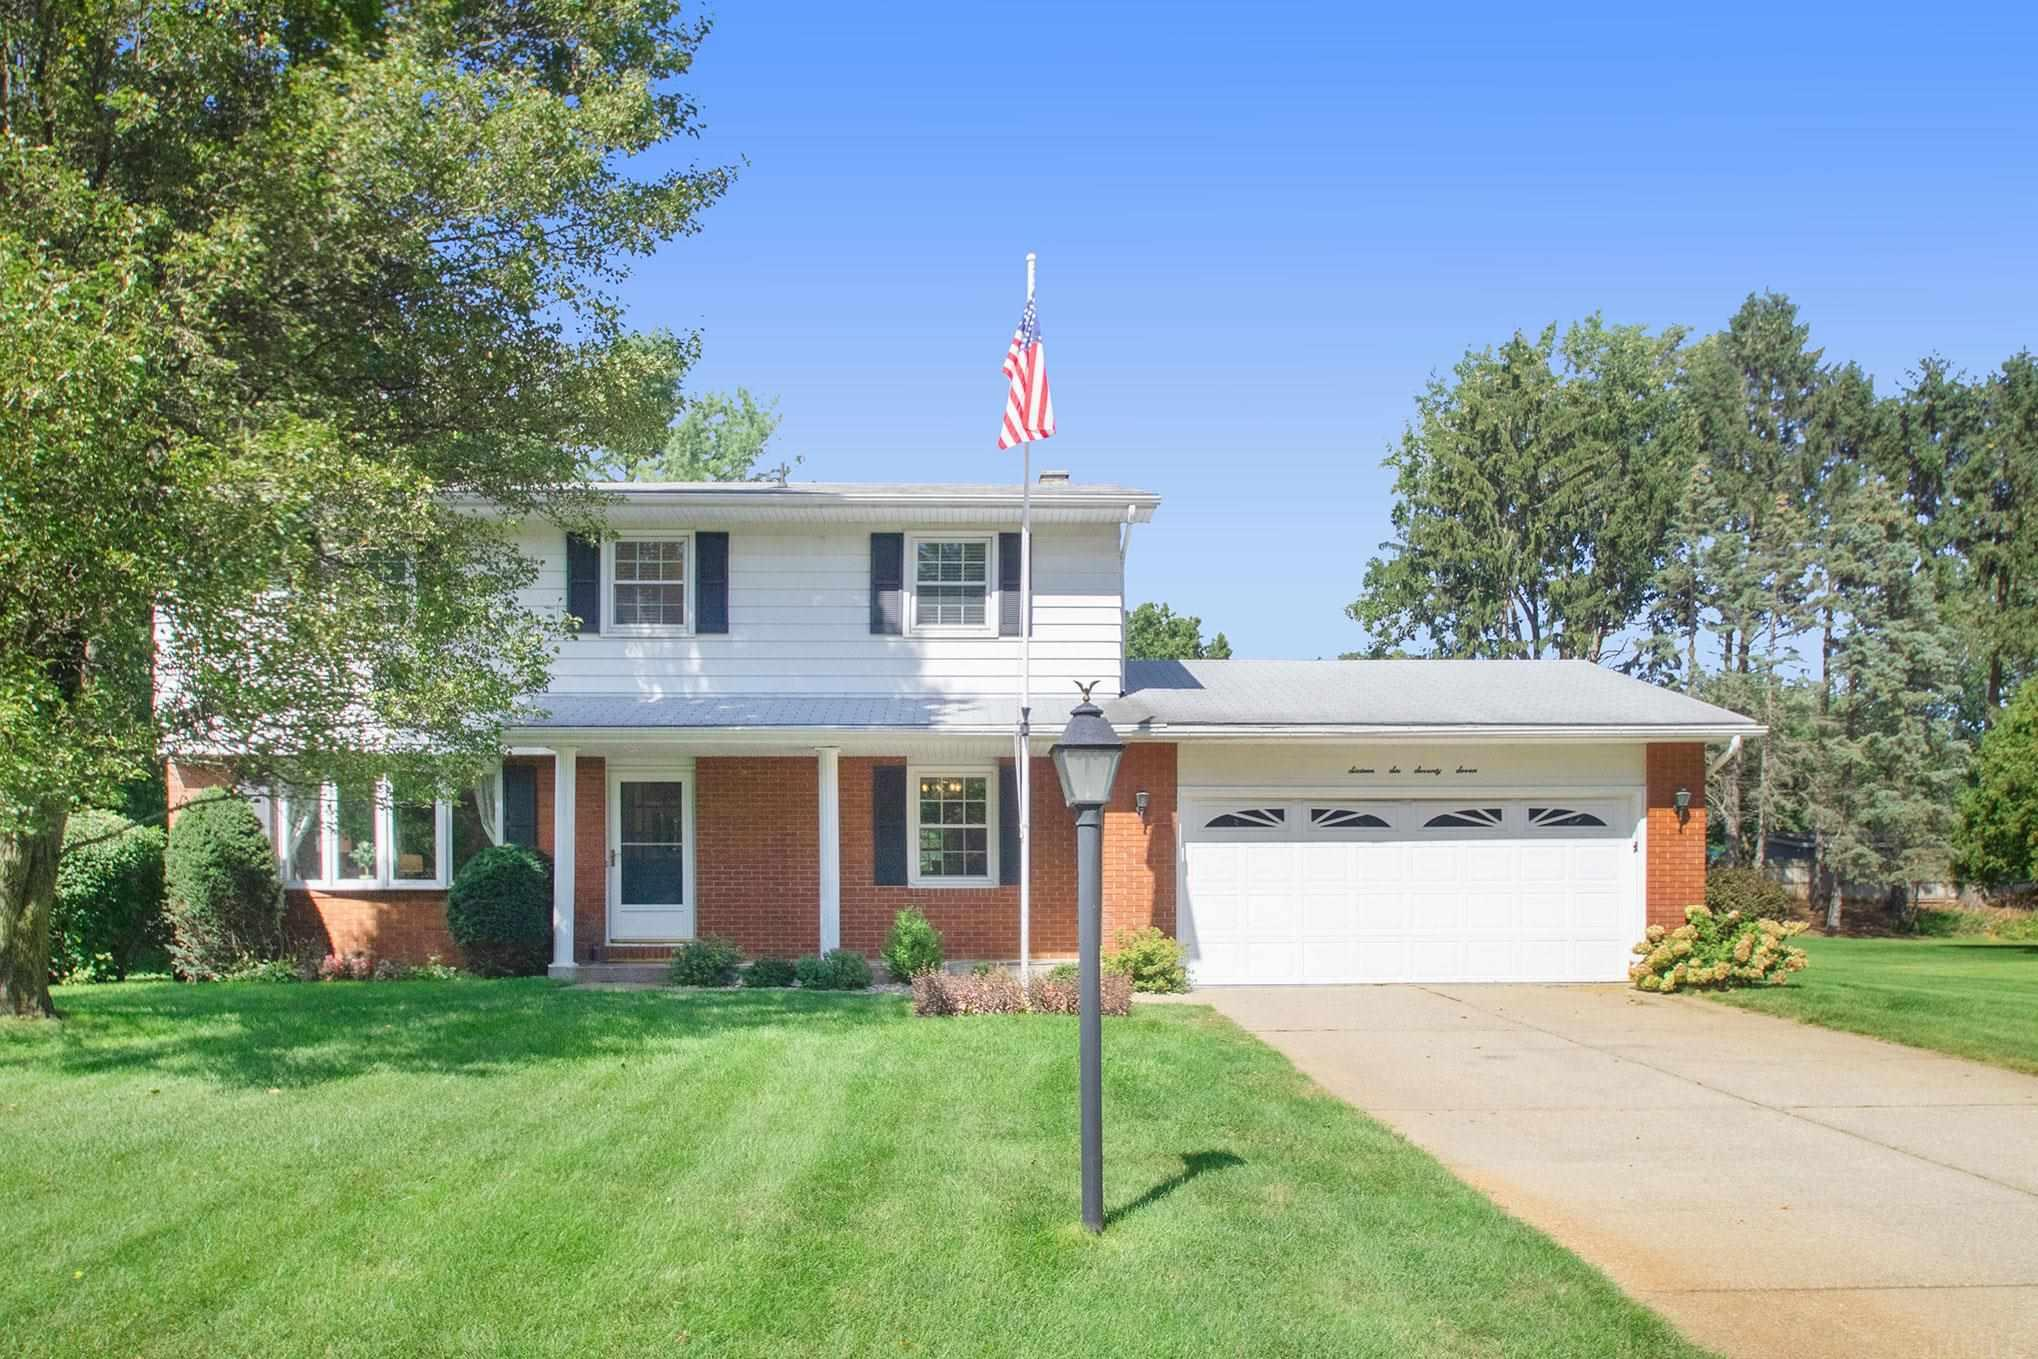 16677 Valley Forge Granger, IN 46530